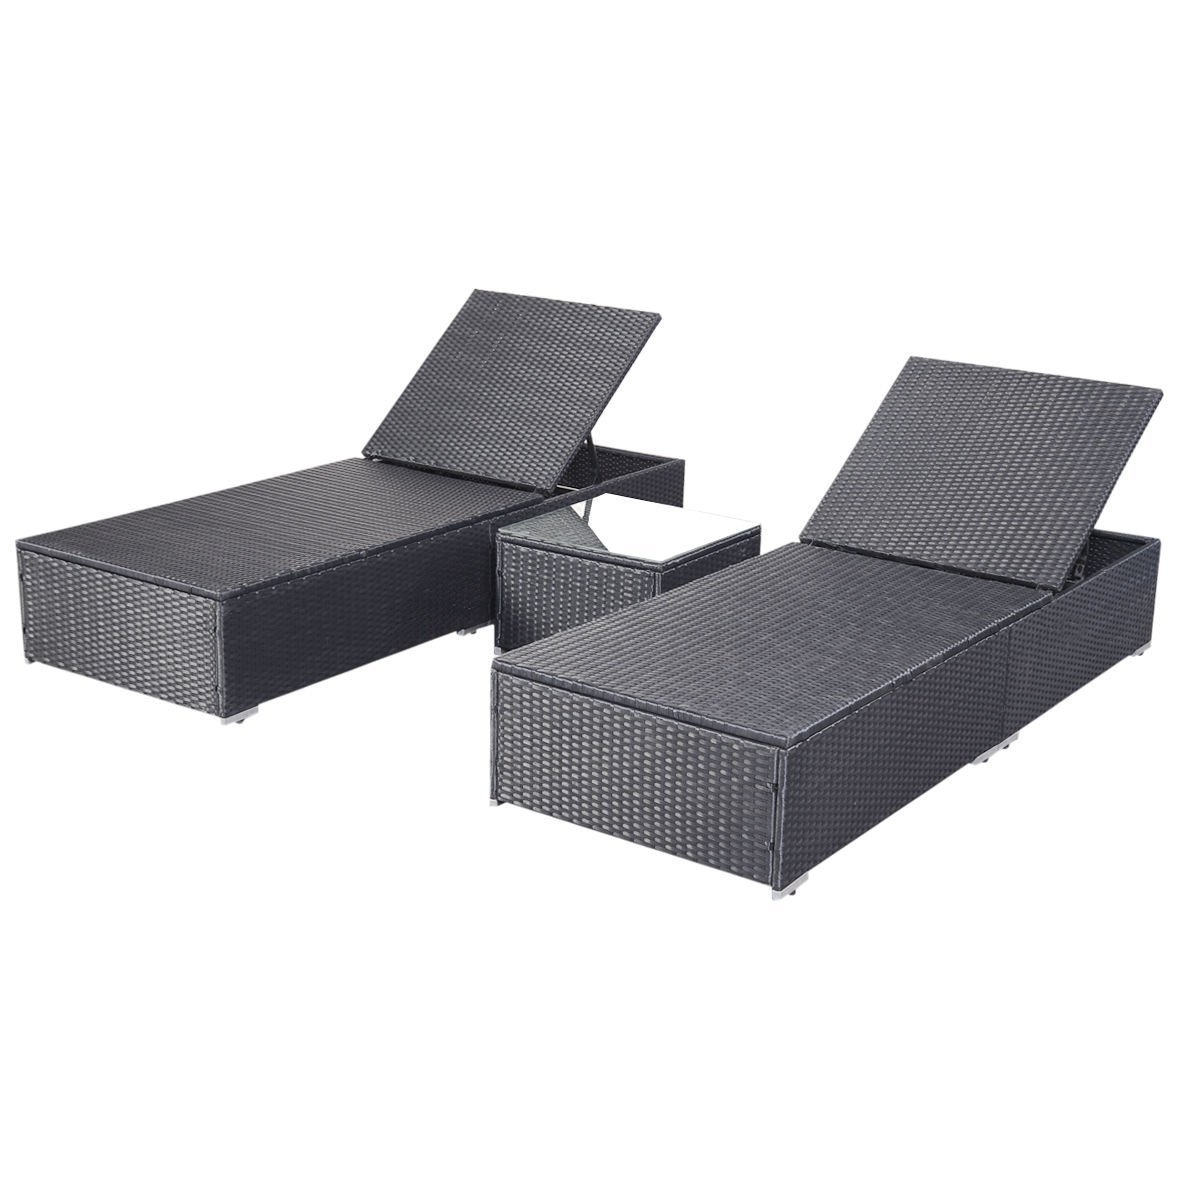 Amazon : Tangkula 3 Pcs Wicker Outdoor Furniture Pool Chaise Regarding Well Liked Black Chaise Lounge Outdoor Chairs (View 2 of 15)